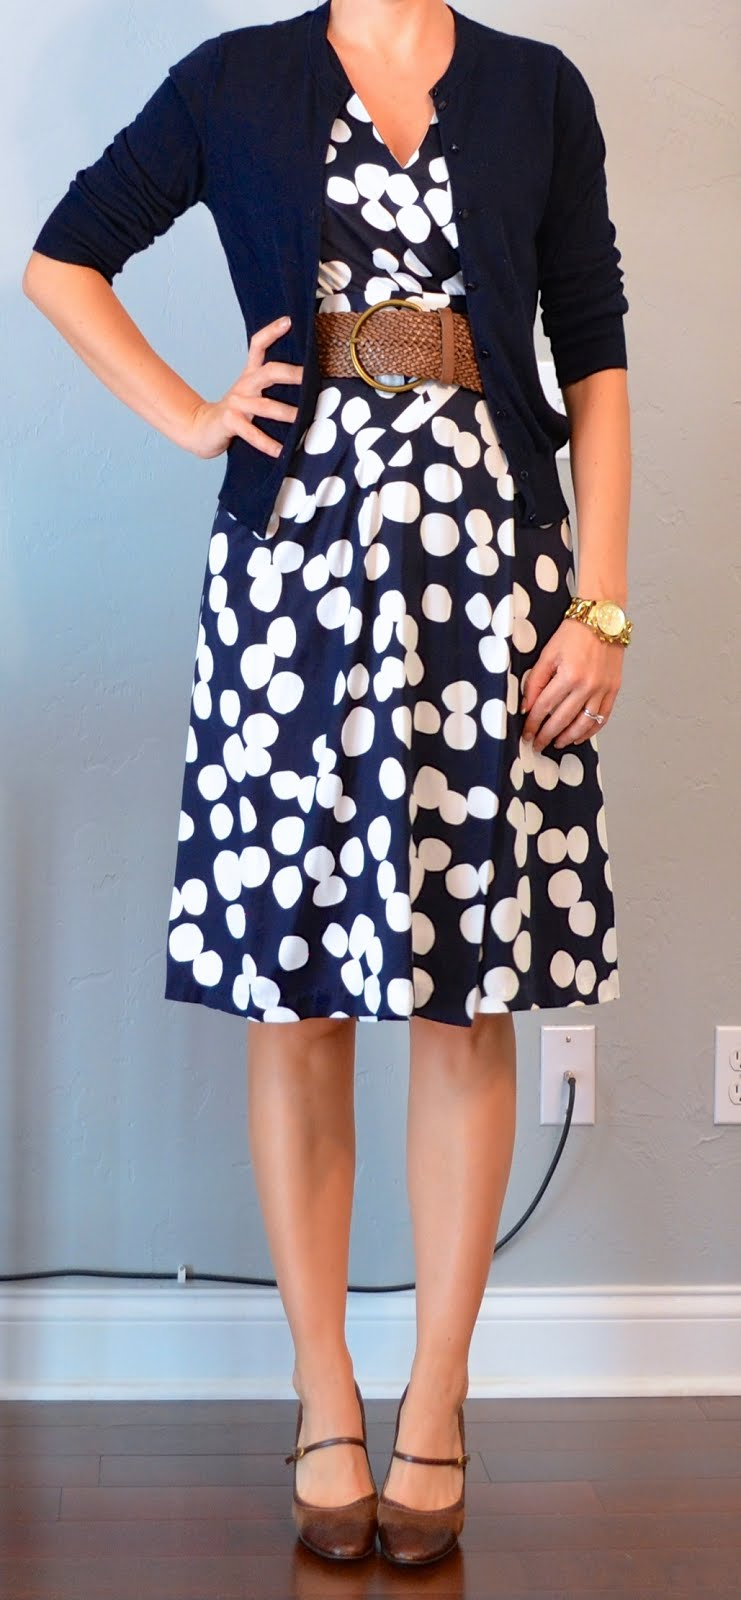 Traditional color combinations for cheap polka dot dresses were black dots on a white background, white dots on a black background, white on navy blue, navy blue on white, white on red, and red on white.